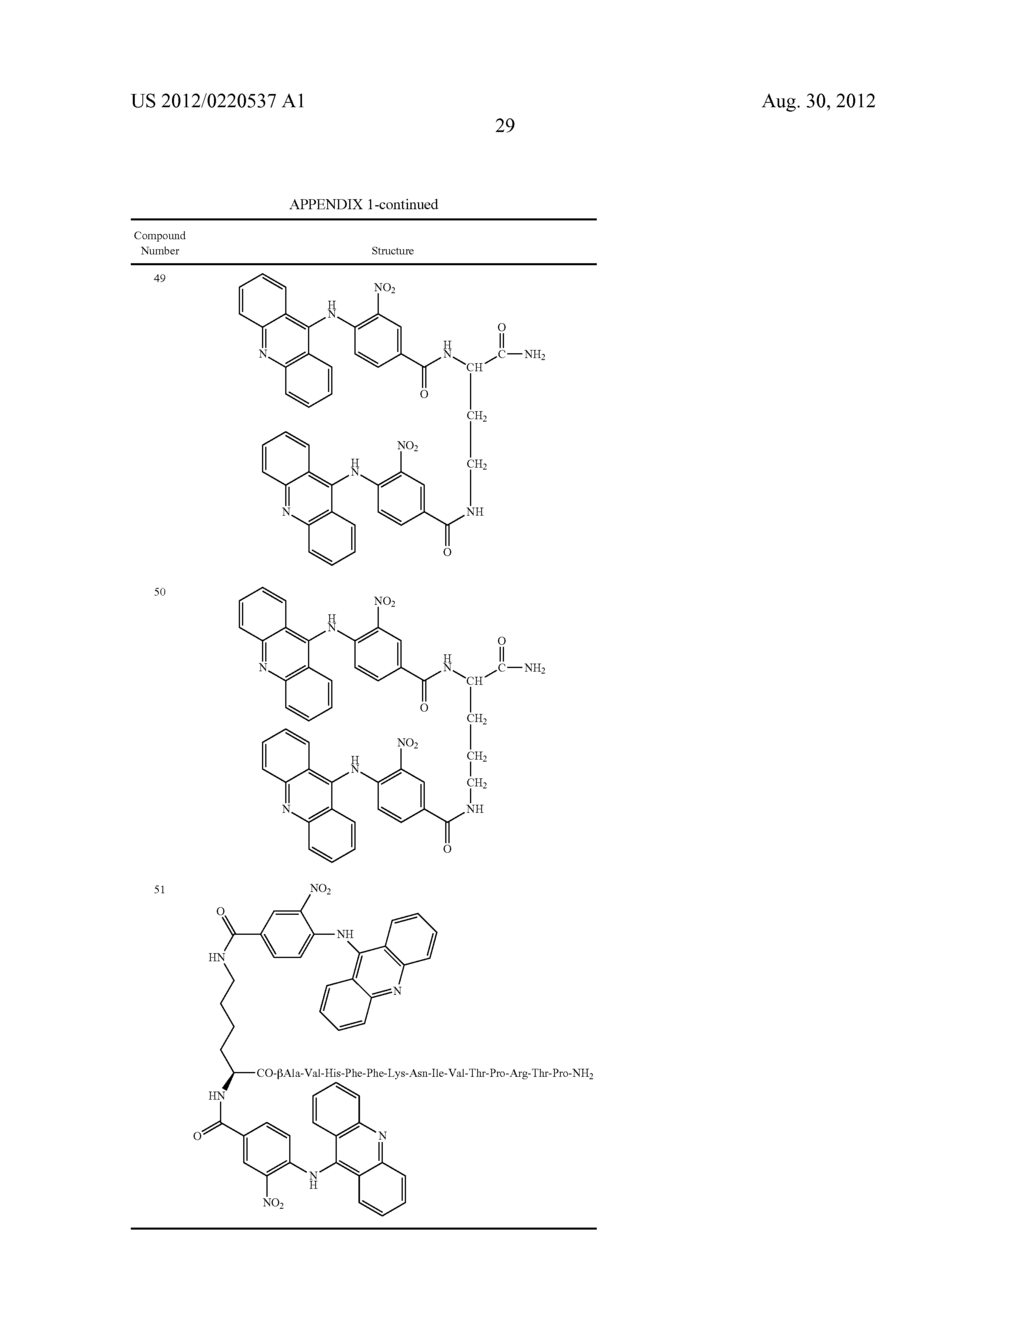 9-AMINOACRIDINE DERIVATIVES, THEIR PREPARATION AND USES - diagram, schematic, and image 31